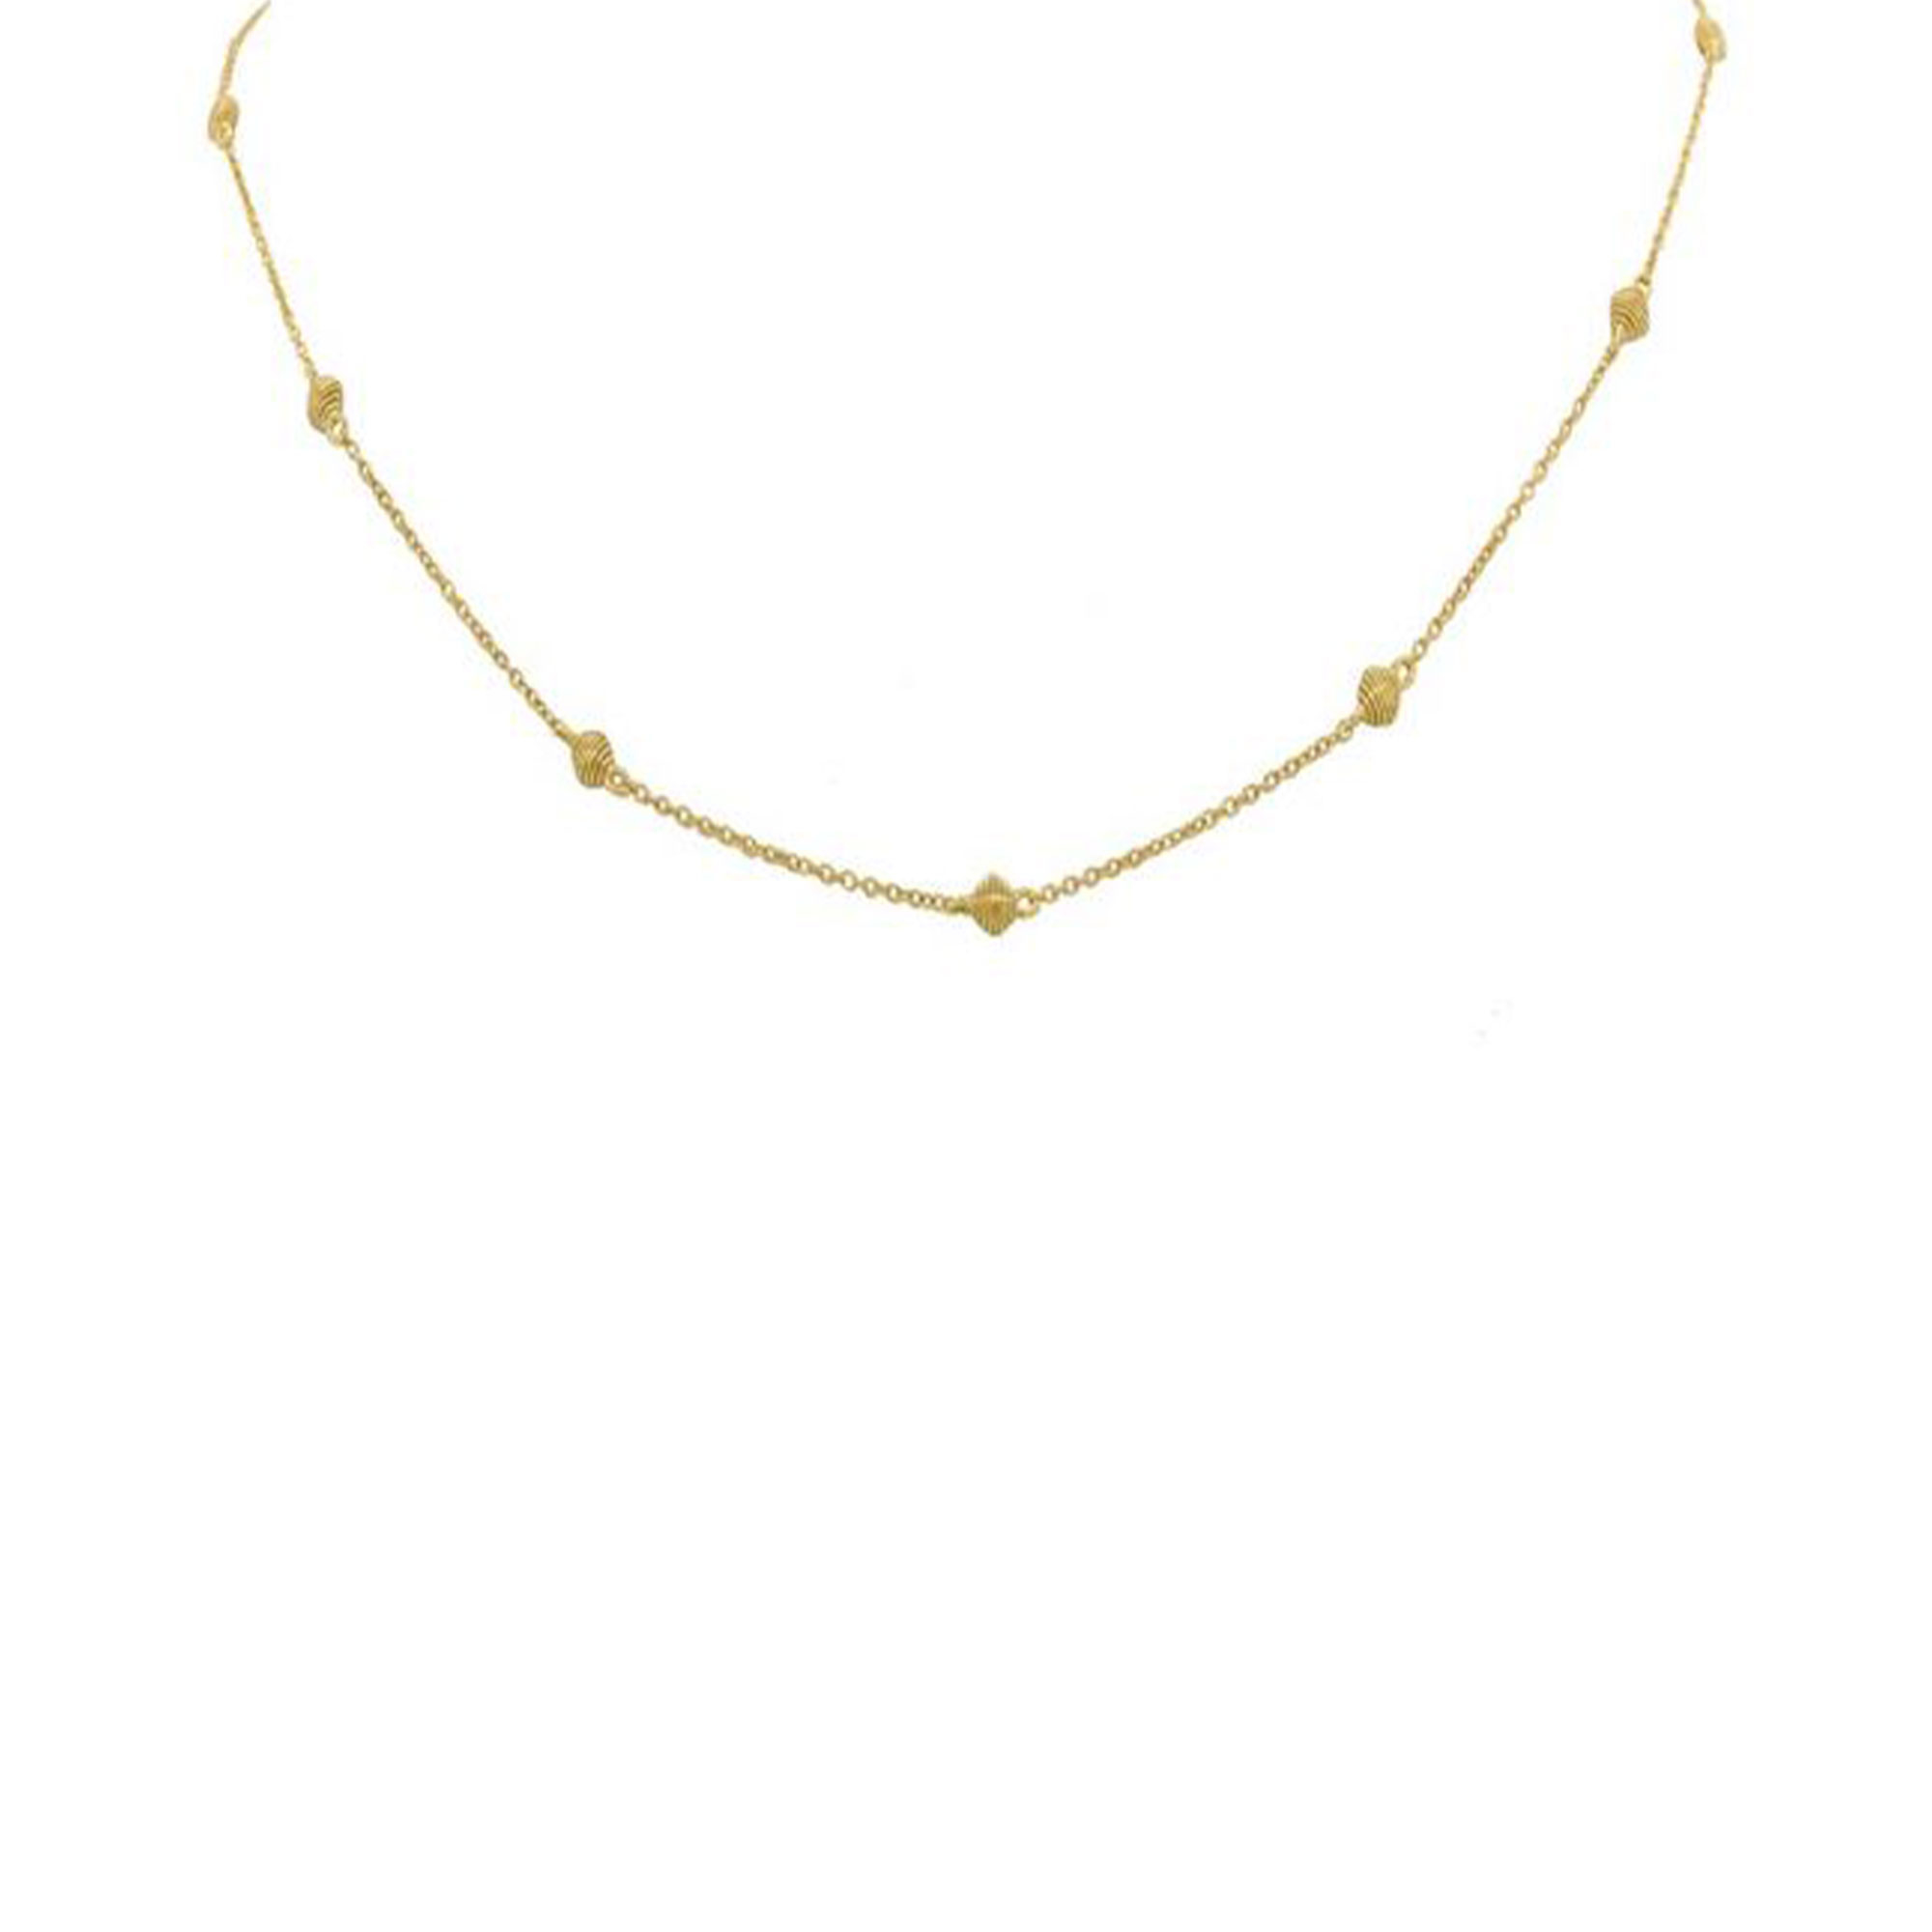 Sloane Street 18K Yellow Gold    Gold Necklace CH013D-Y